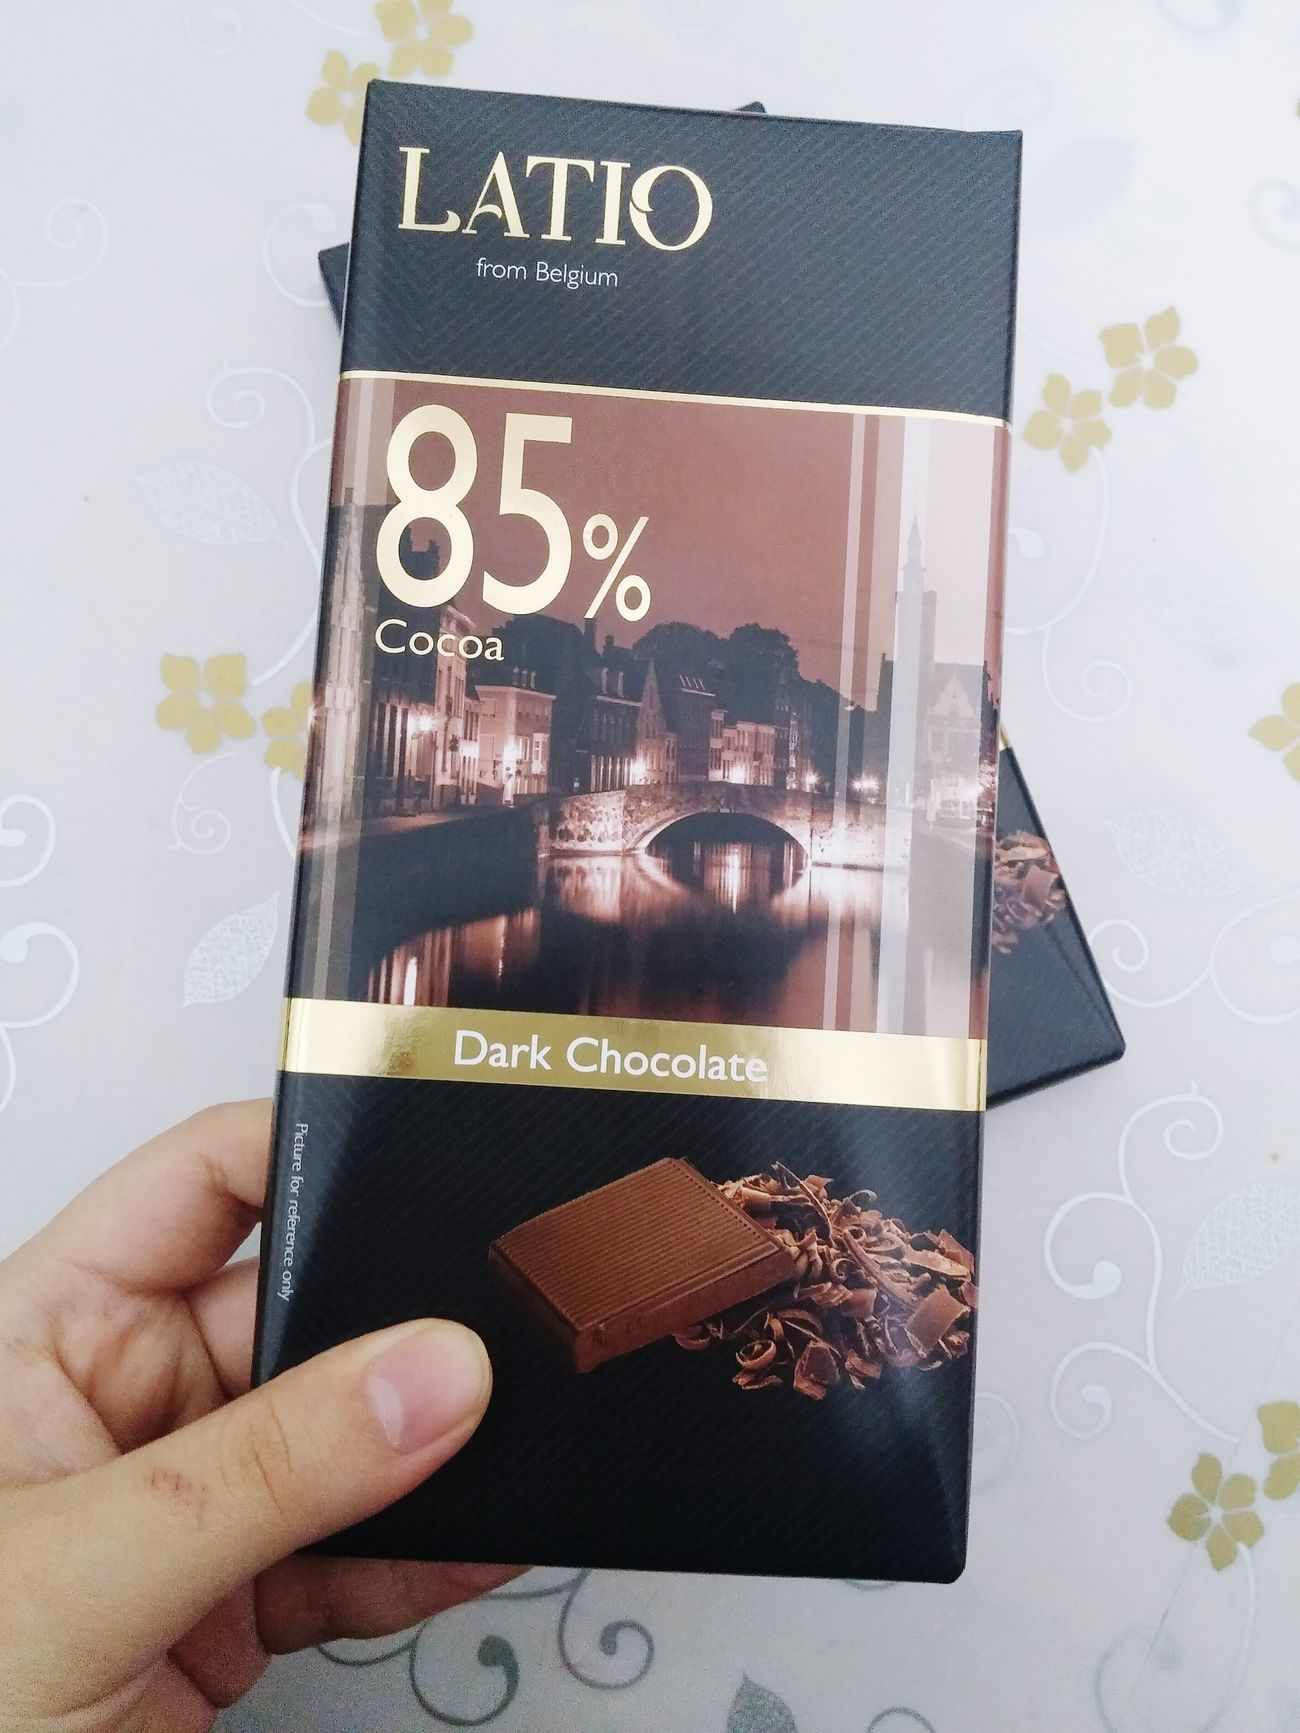 Dark Chocolate Dark Chocolate ♥ Dark Chocolate*😚😋 Chocolate♡ Chocolate